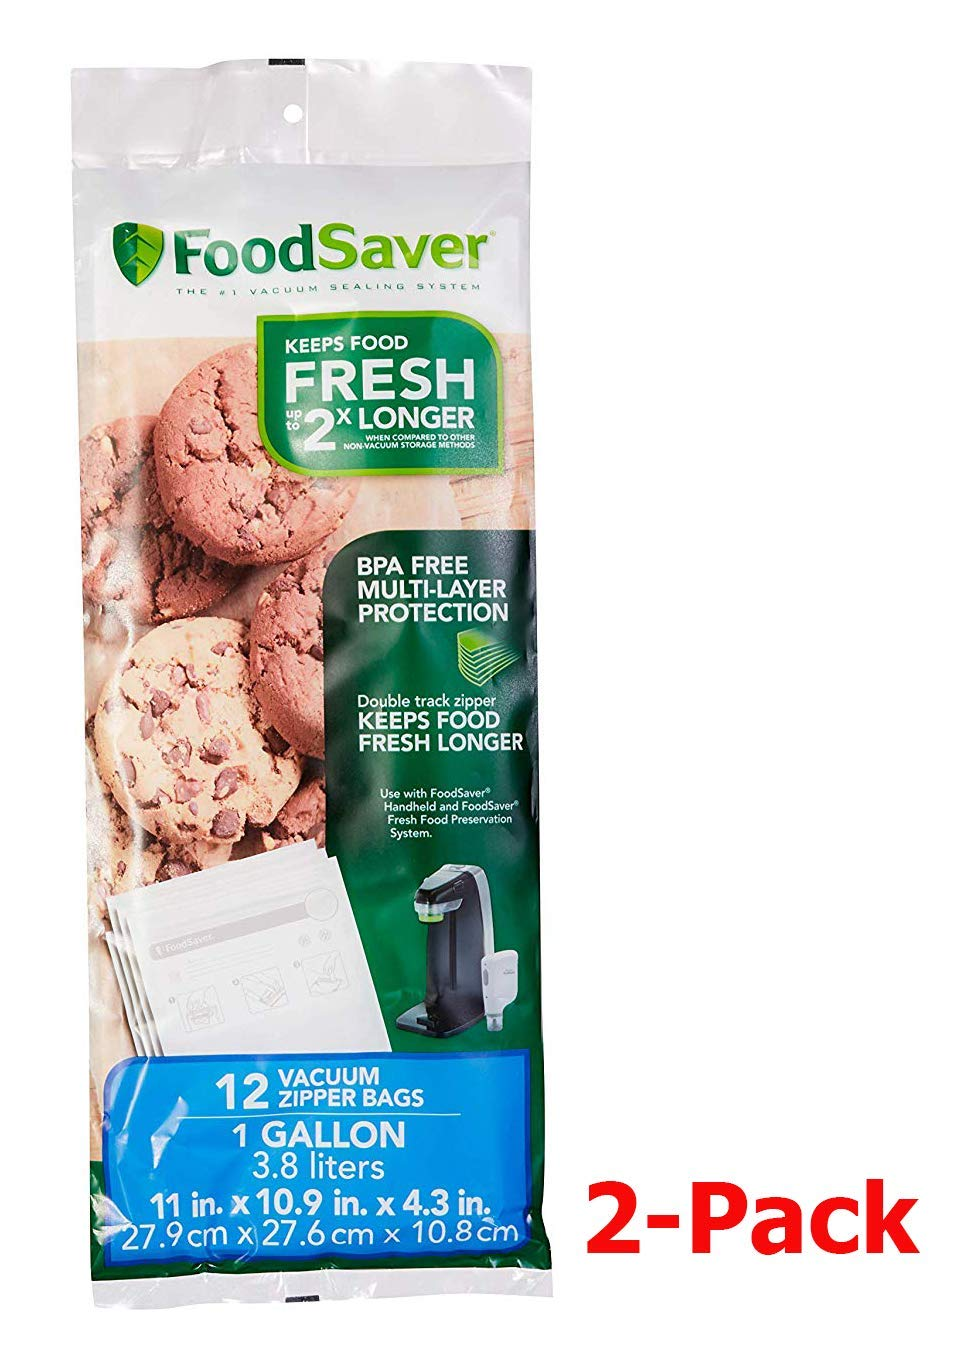 FoodSaver FSFRBZ0316-000 1-Gallon Vacuum Zipper Bags, 12 Count, Multi 2-Pack by FoodSaver